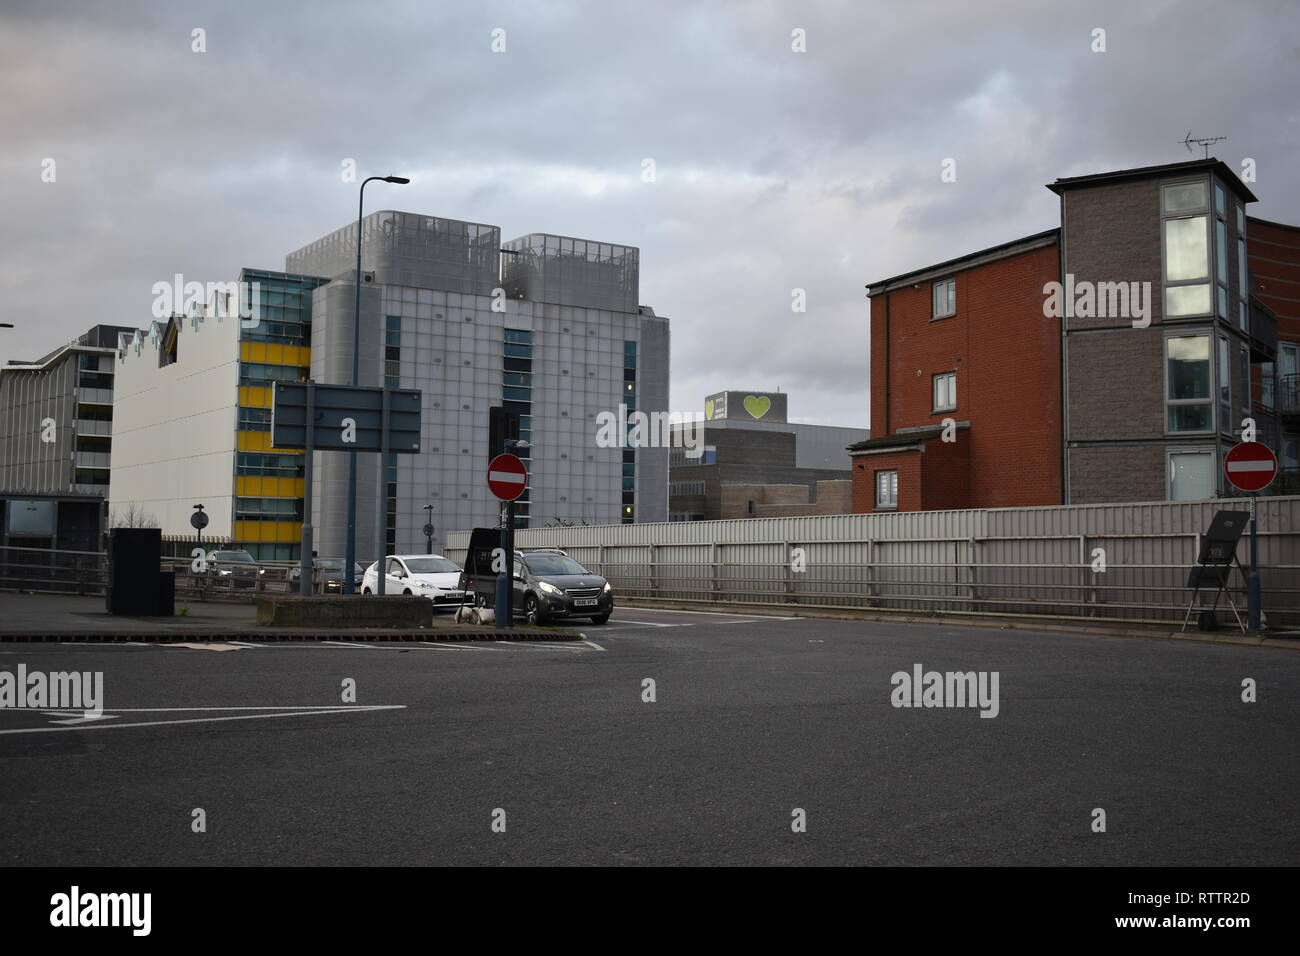 Distant view of Grenfell Tower currently being refurbished and repaired. The view through is from the pedestrian crossing outside Westfield Shops. - Stock Image